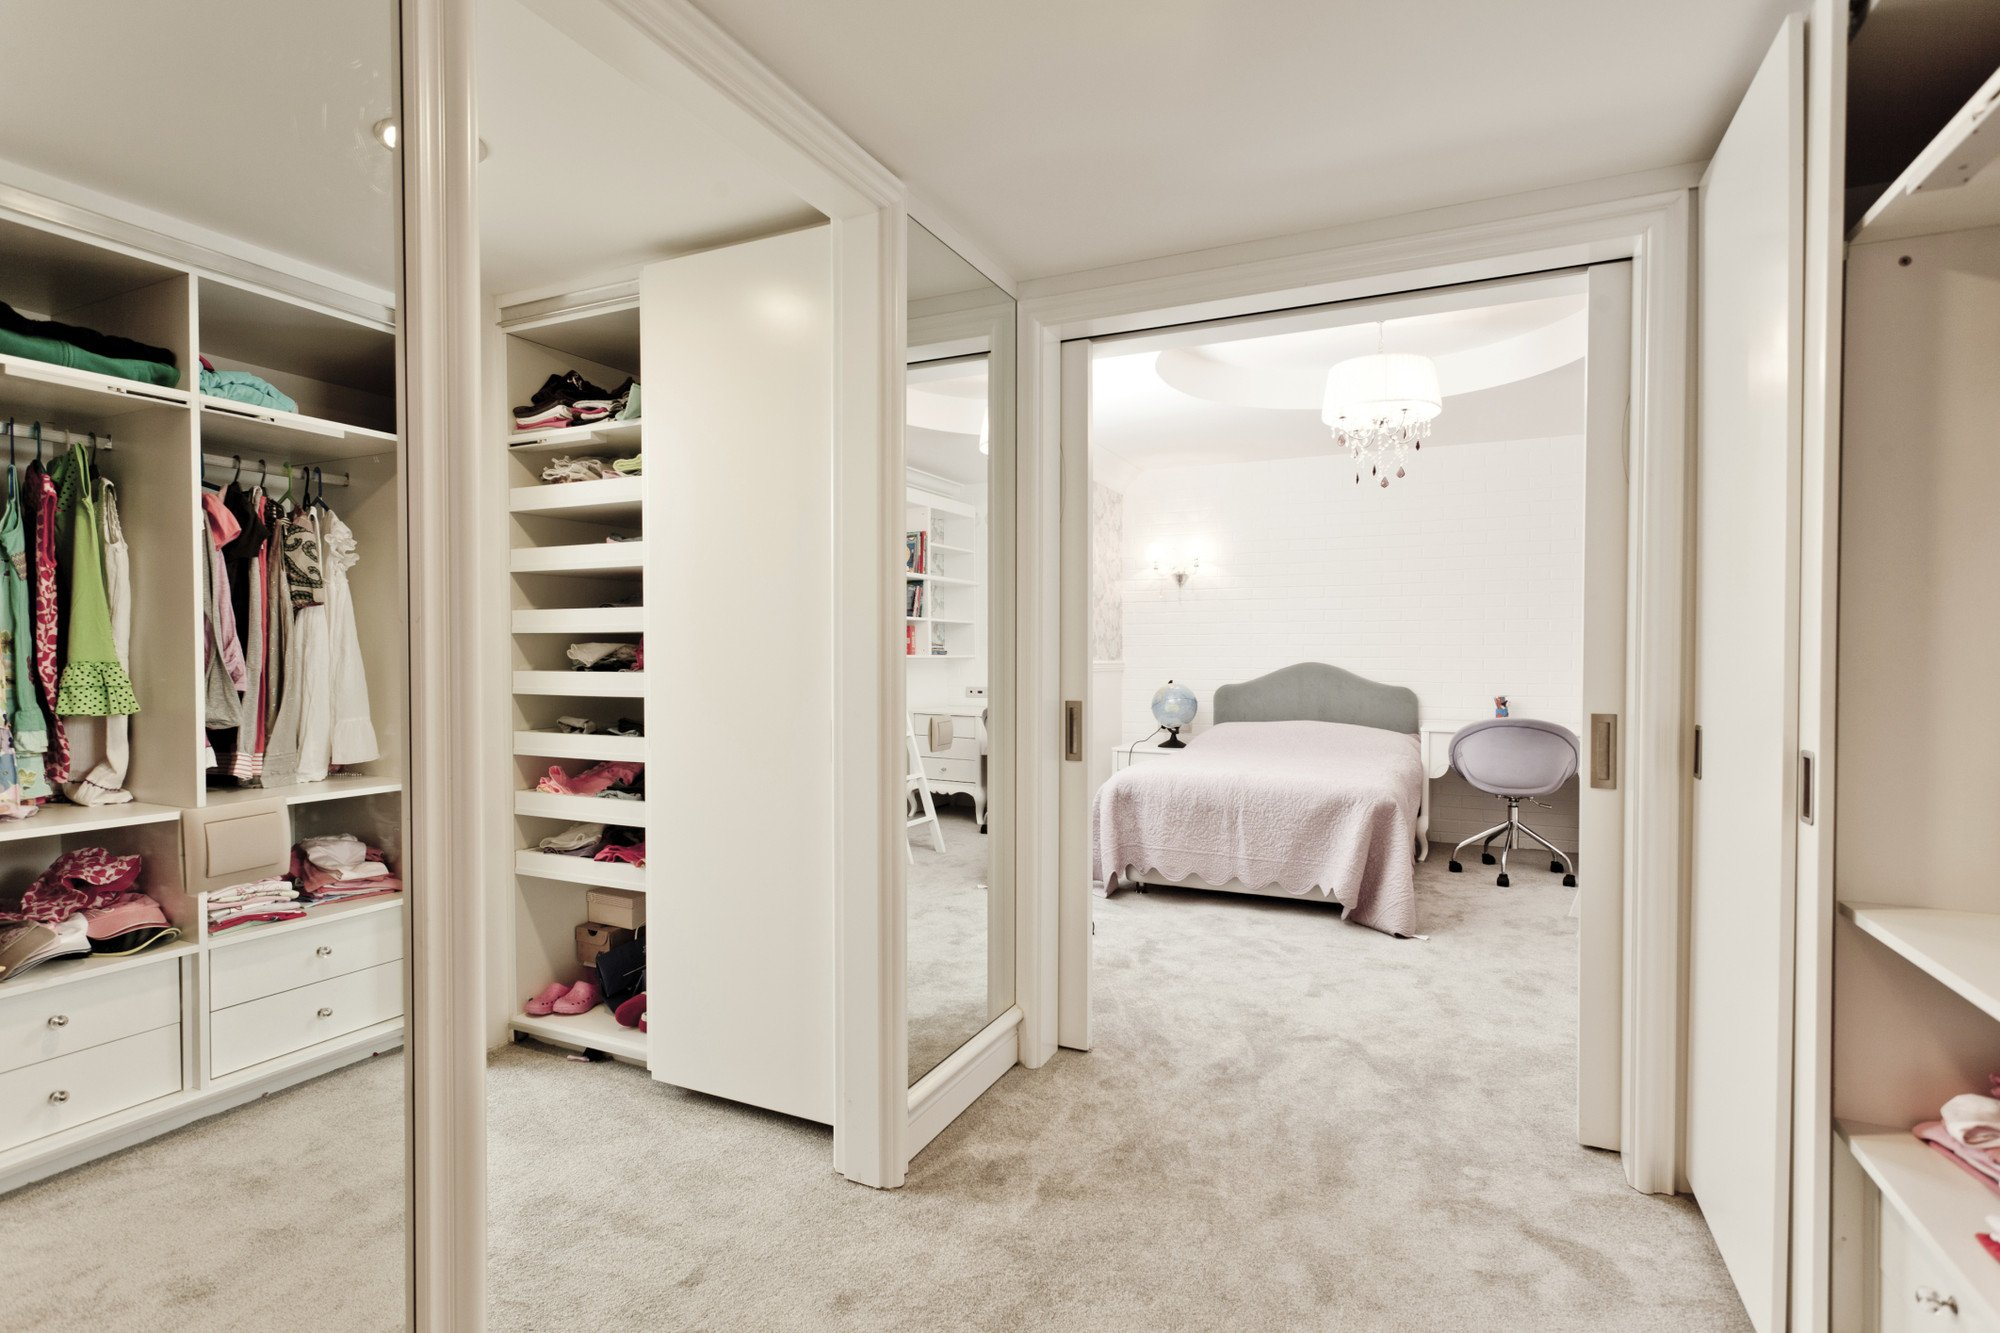 Mirrored wardrobe in house